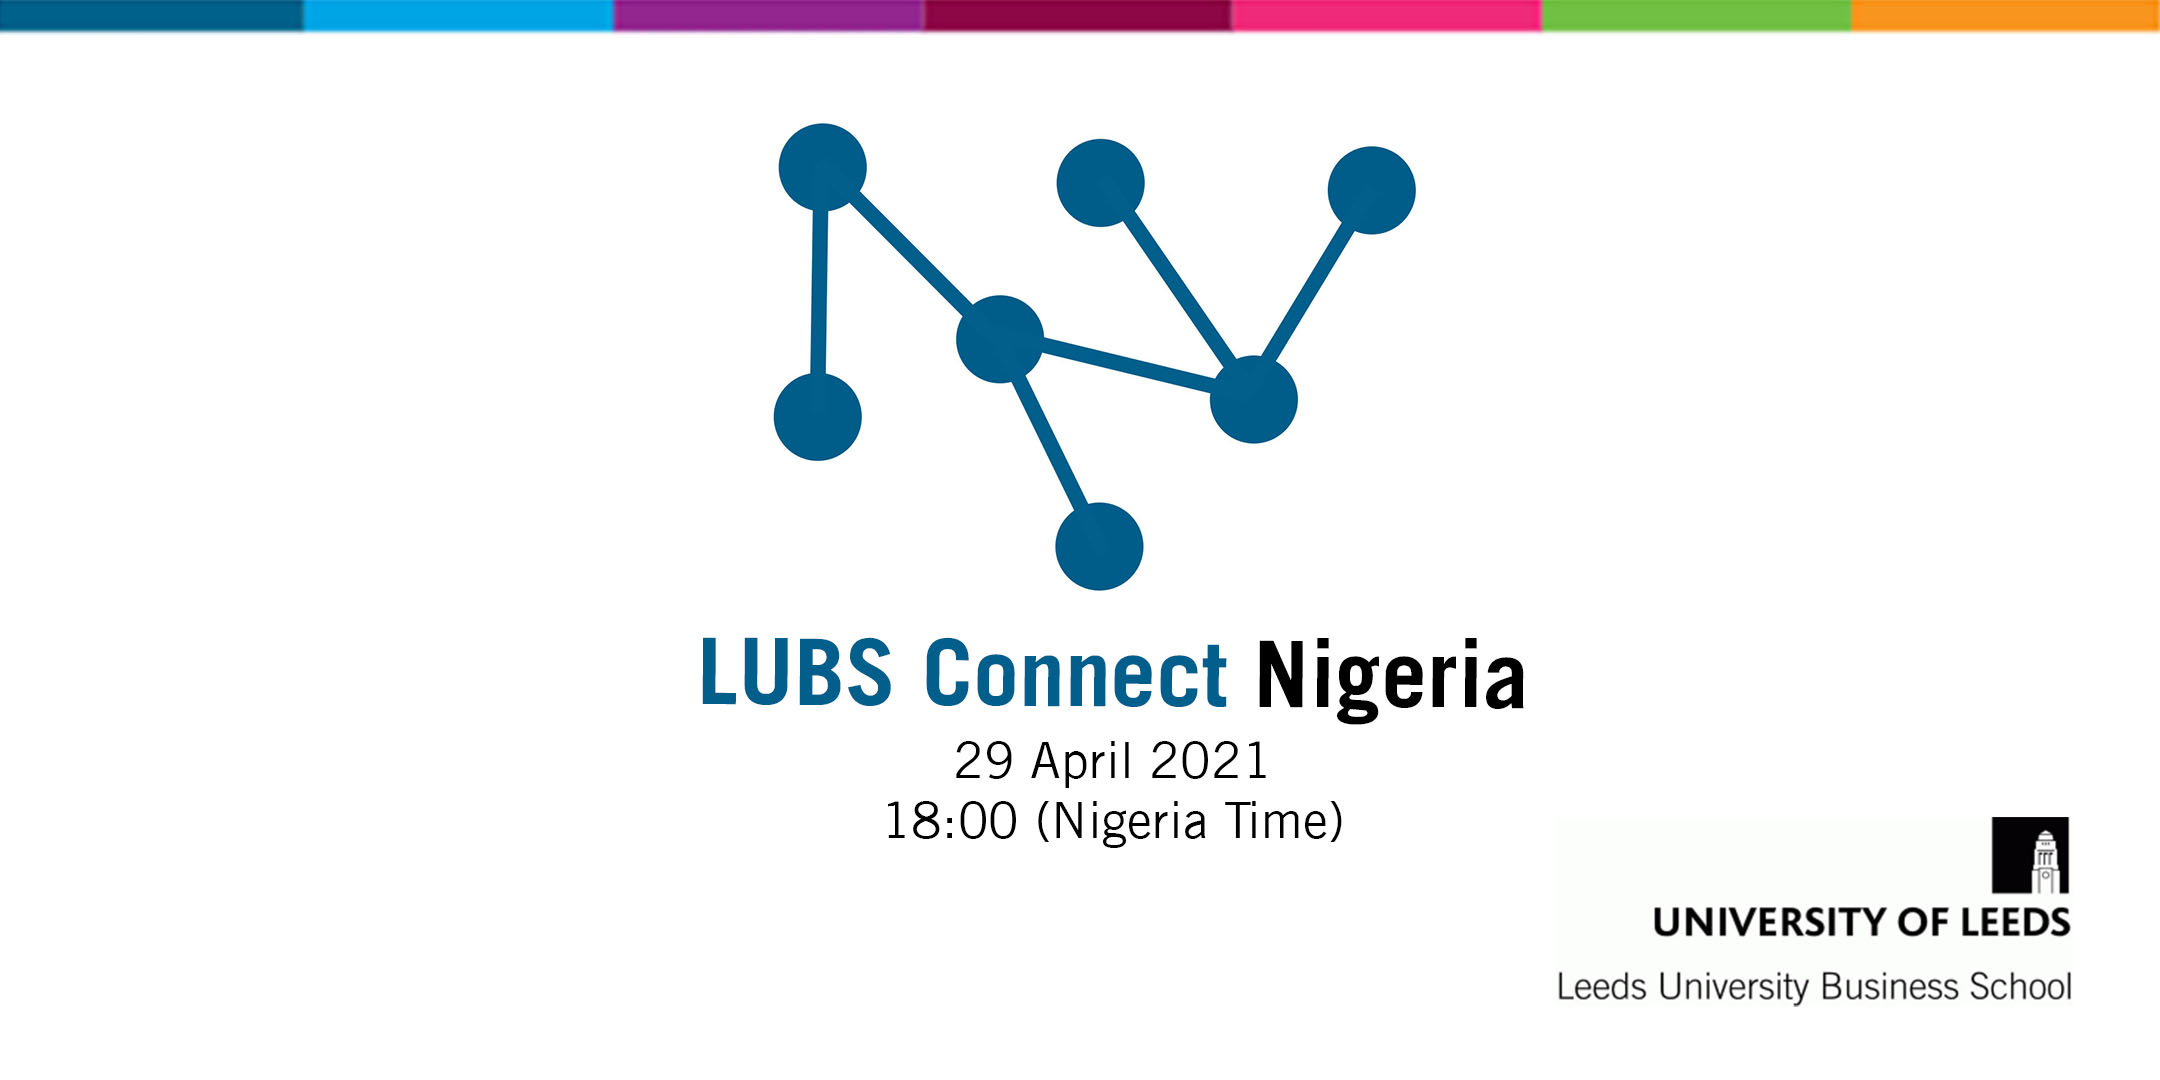 LUBS Connect Nigeria